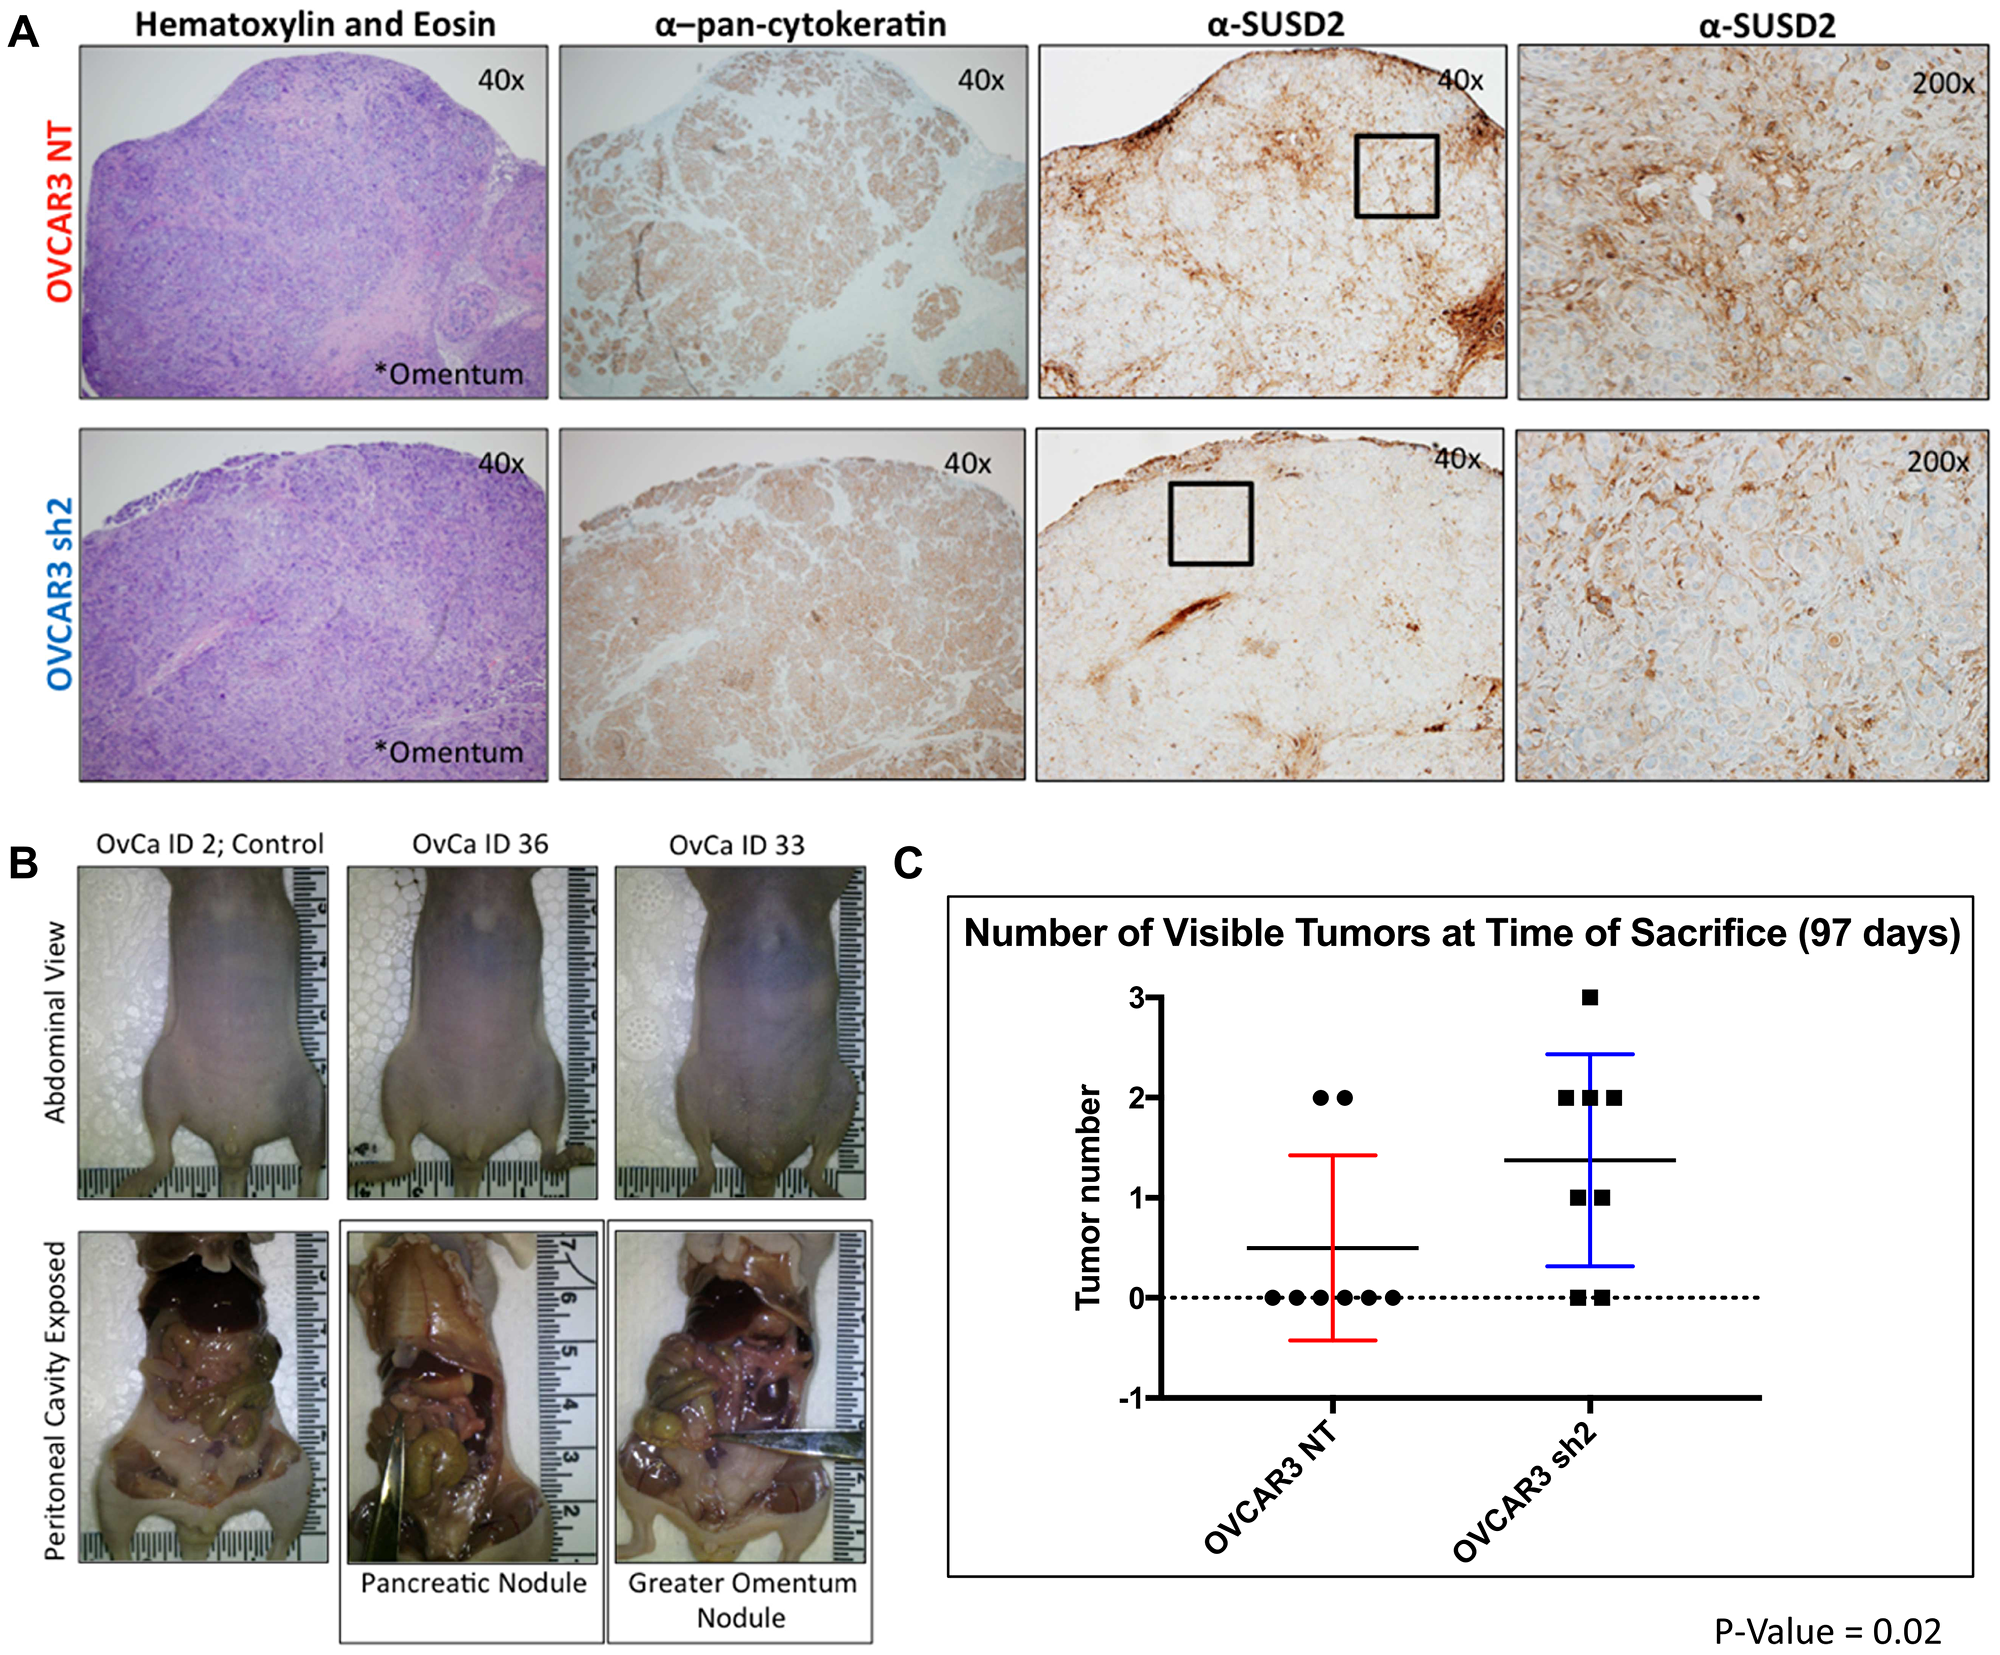 SUSD2-KD mice from Experimental Arm 1 had increased tumor formation.